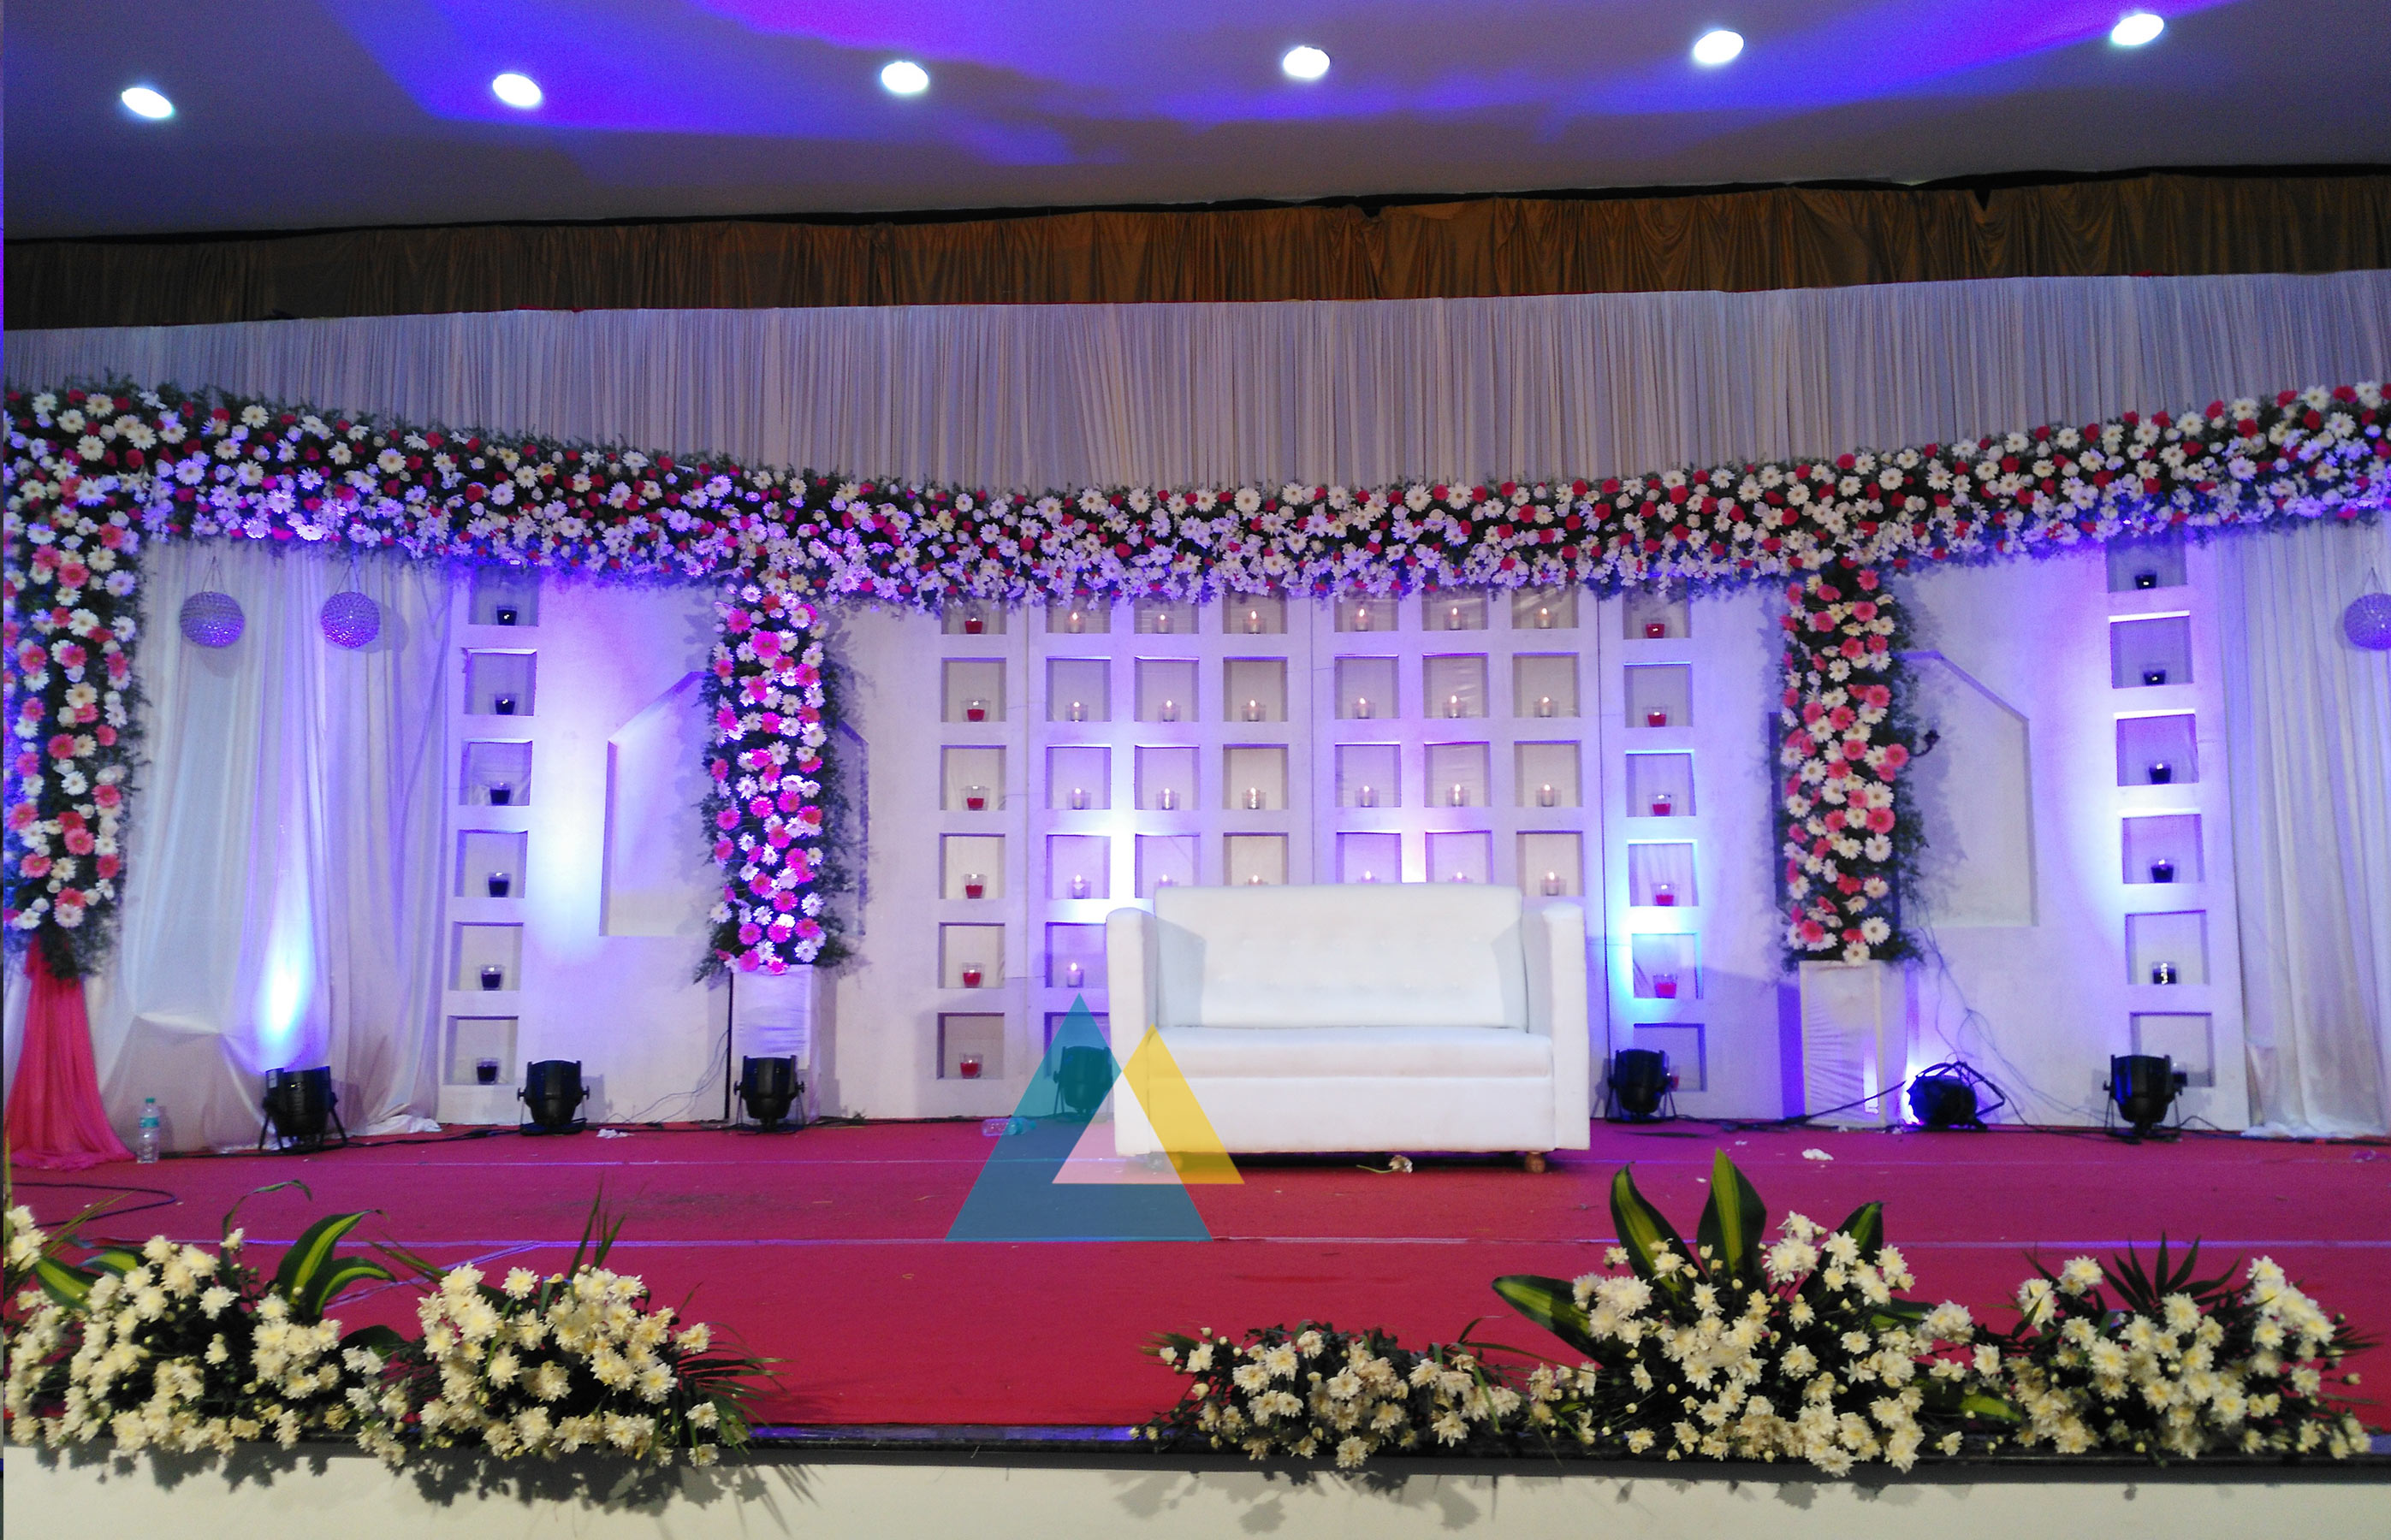 Wedding reception decoration done at bkn auditorium for Marriage decoration photos